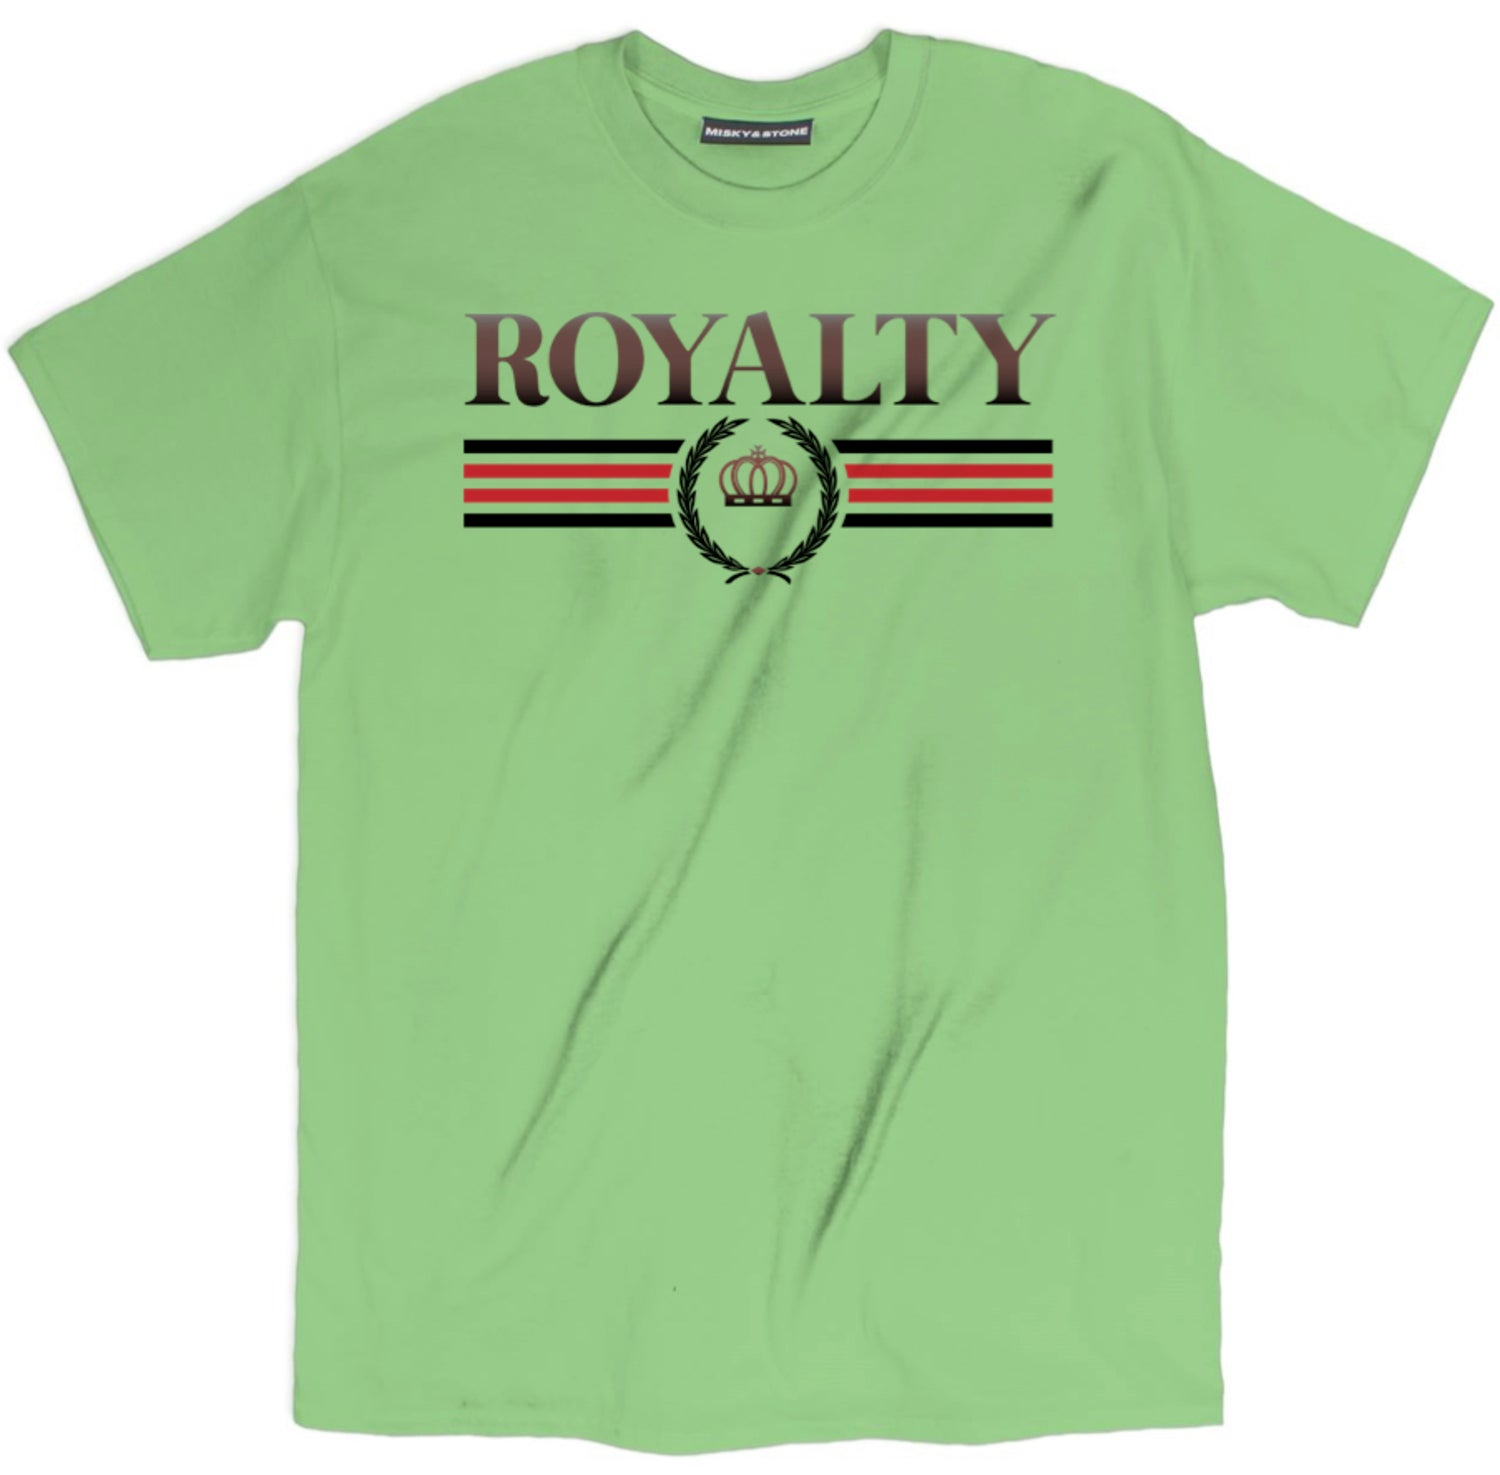 Royalty Shirt